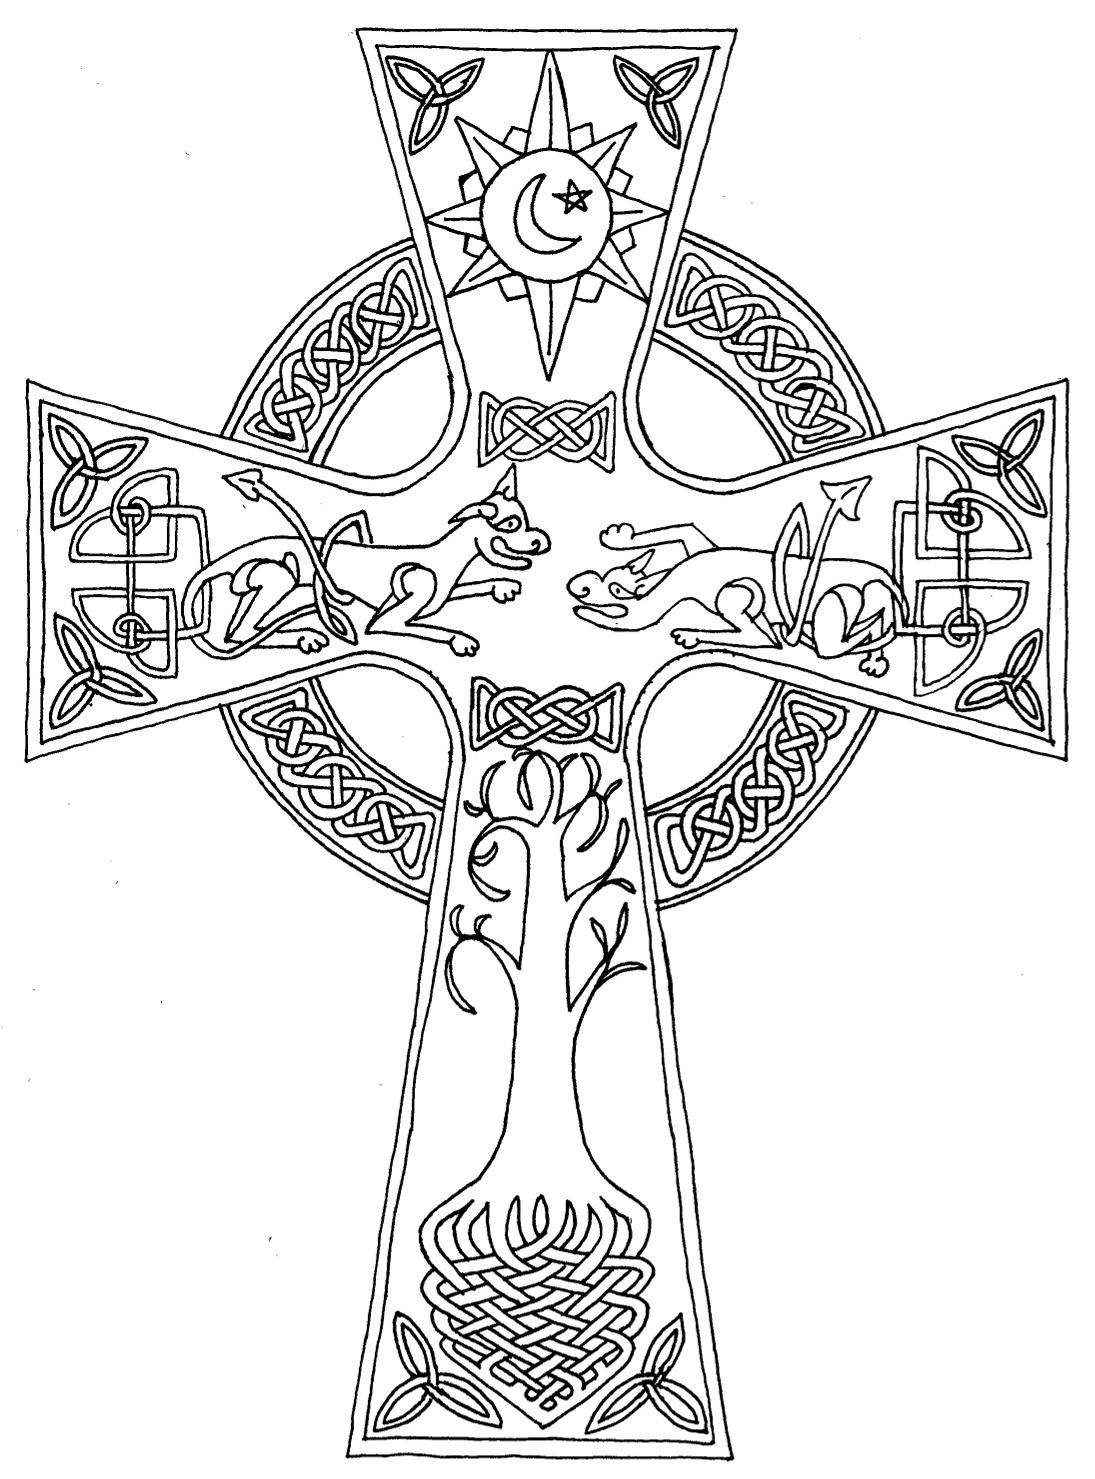 coloring cross kids celtic cross coloring page thecatholickidcom in 2020 coloring cross kids